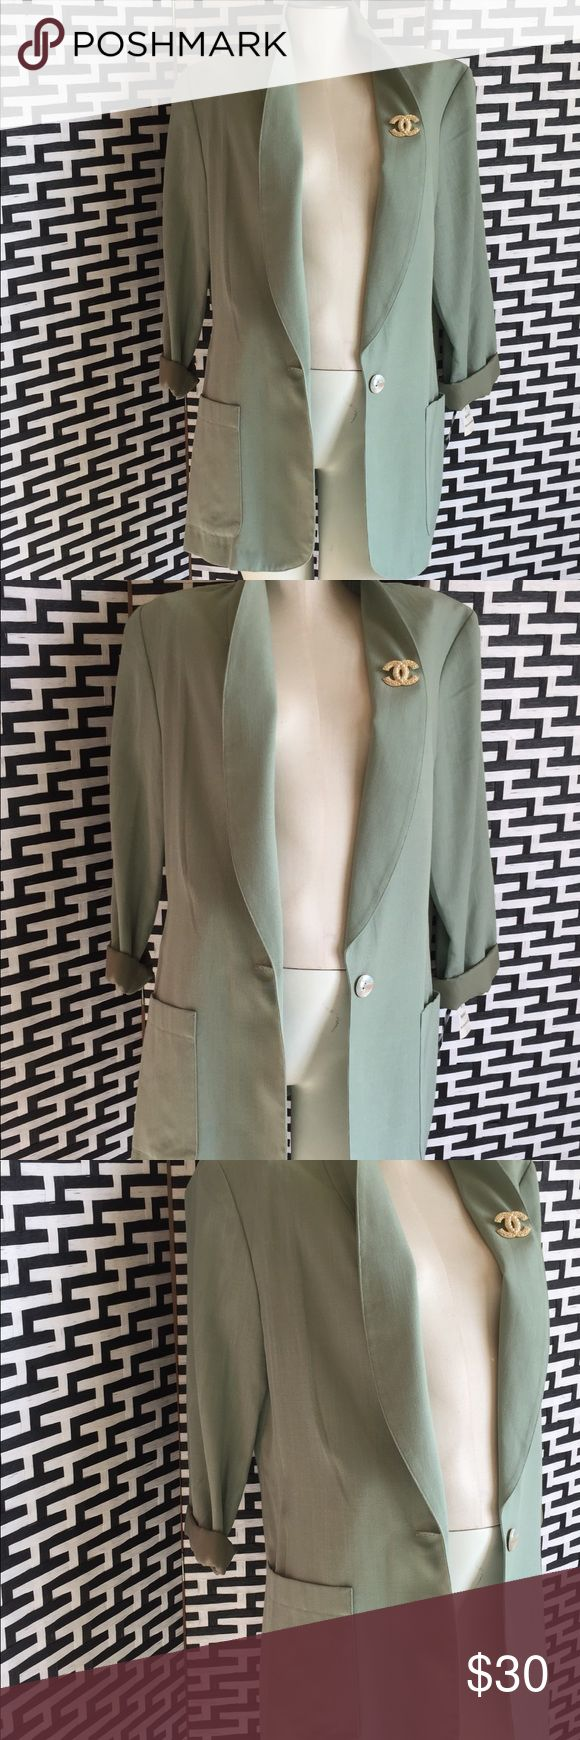 💚Pretty Green Blazer💚 Light green Pearl button NWT Vintage style fashion This does not come with Chanel pendant Jackets & Coats Blazers